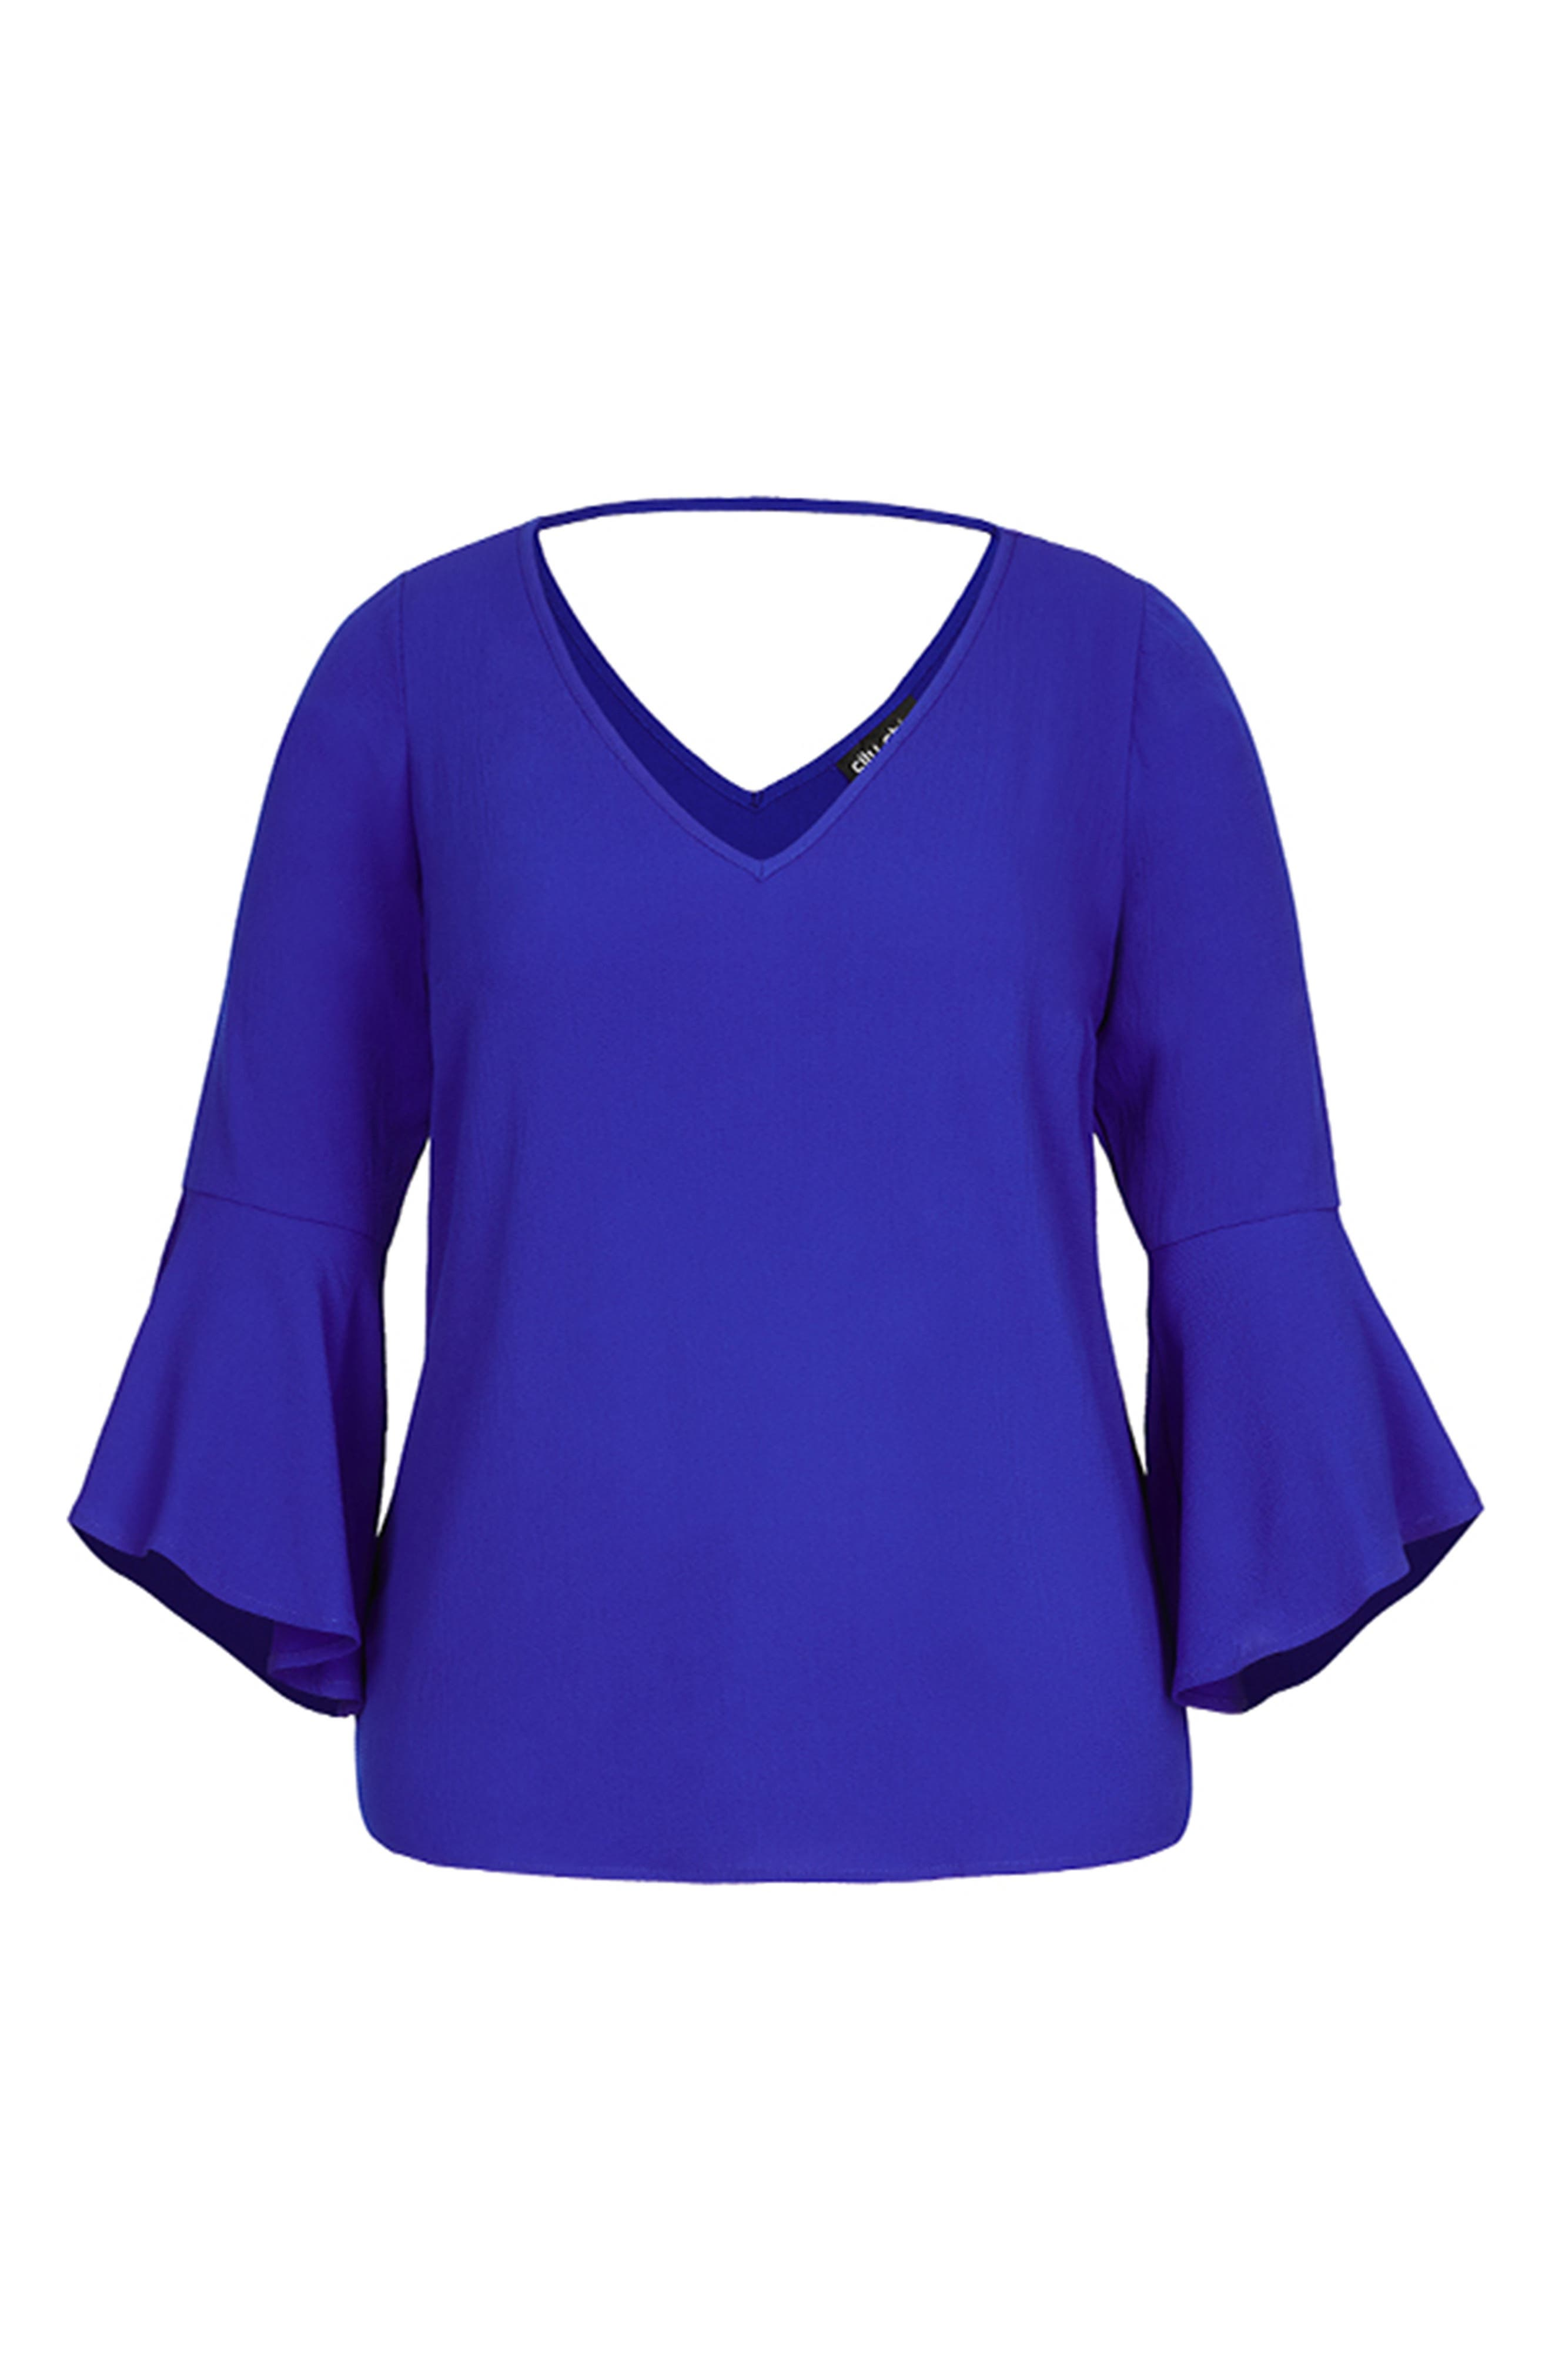 Bell Sleeve Top,                             Alternate thumbnail 4, color,                             ULTRA BLUE